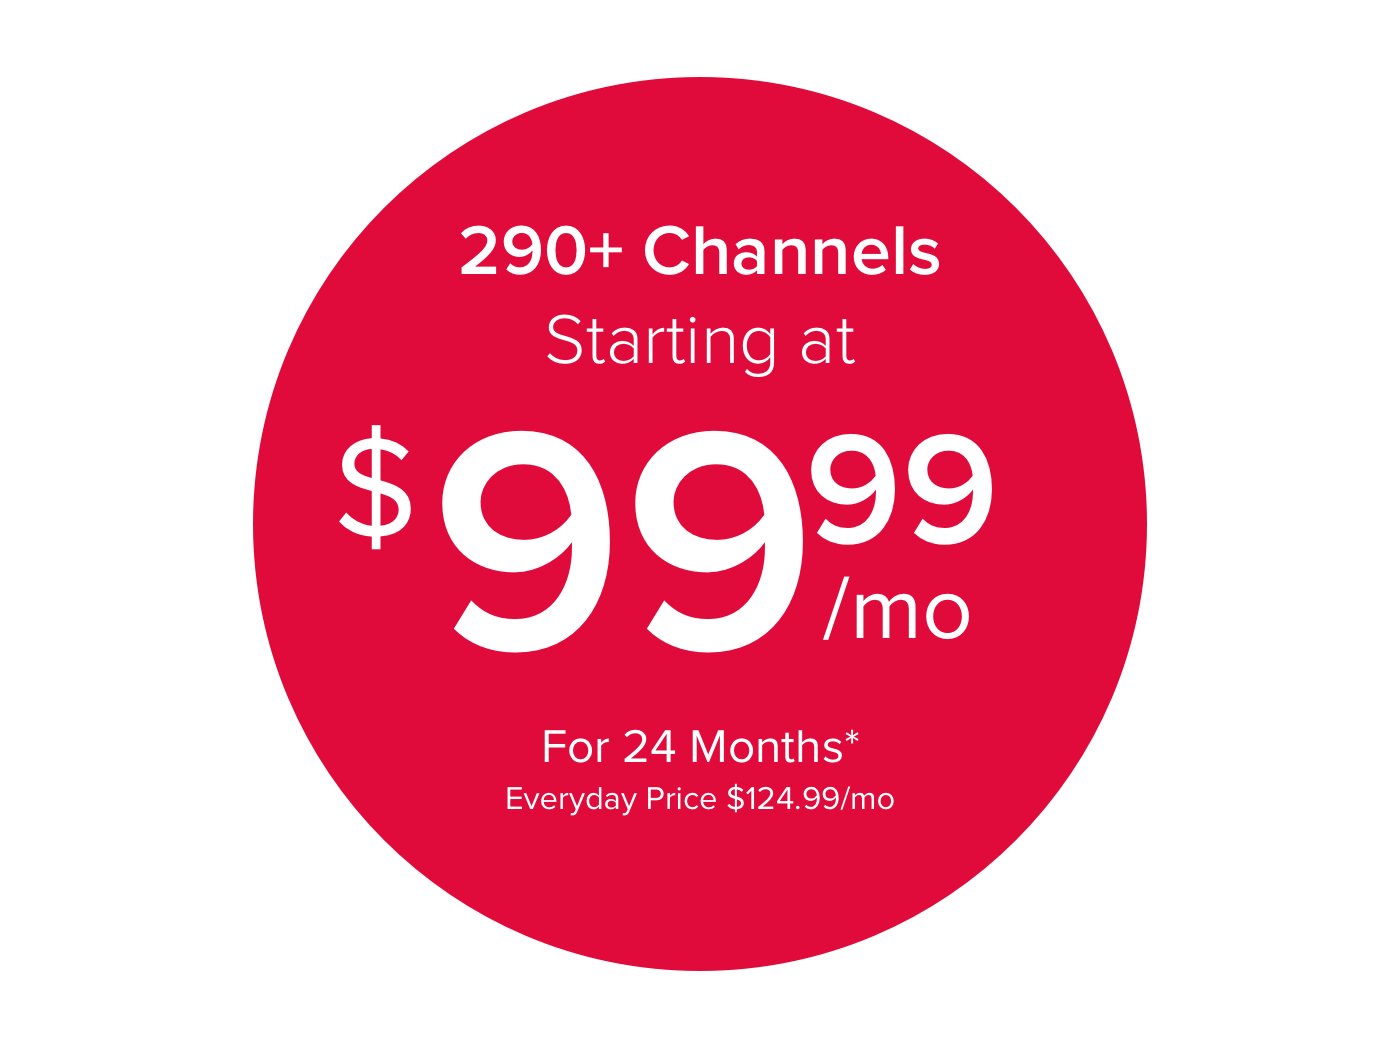 290 plus Channels Starting at $99.99/mo for 24 Months*  Everyday price $124.99/mo